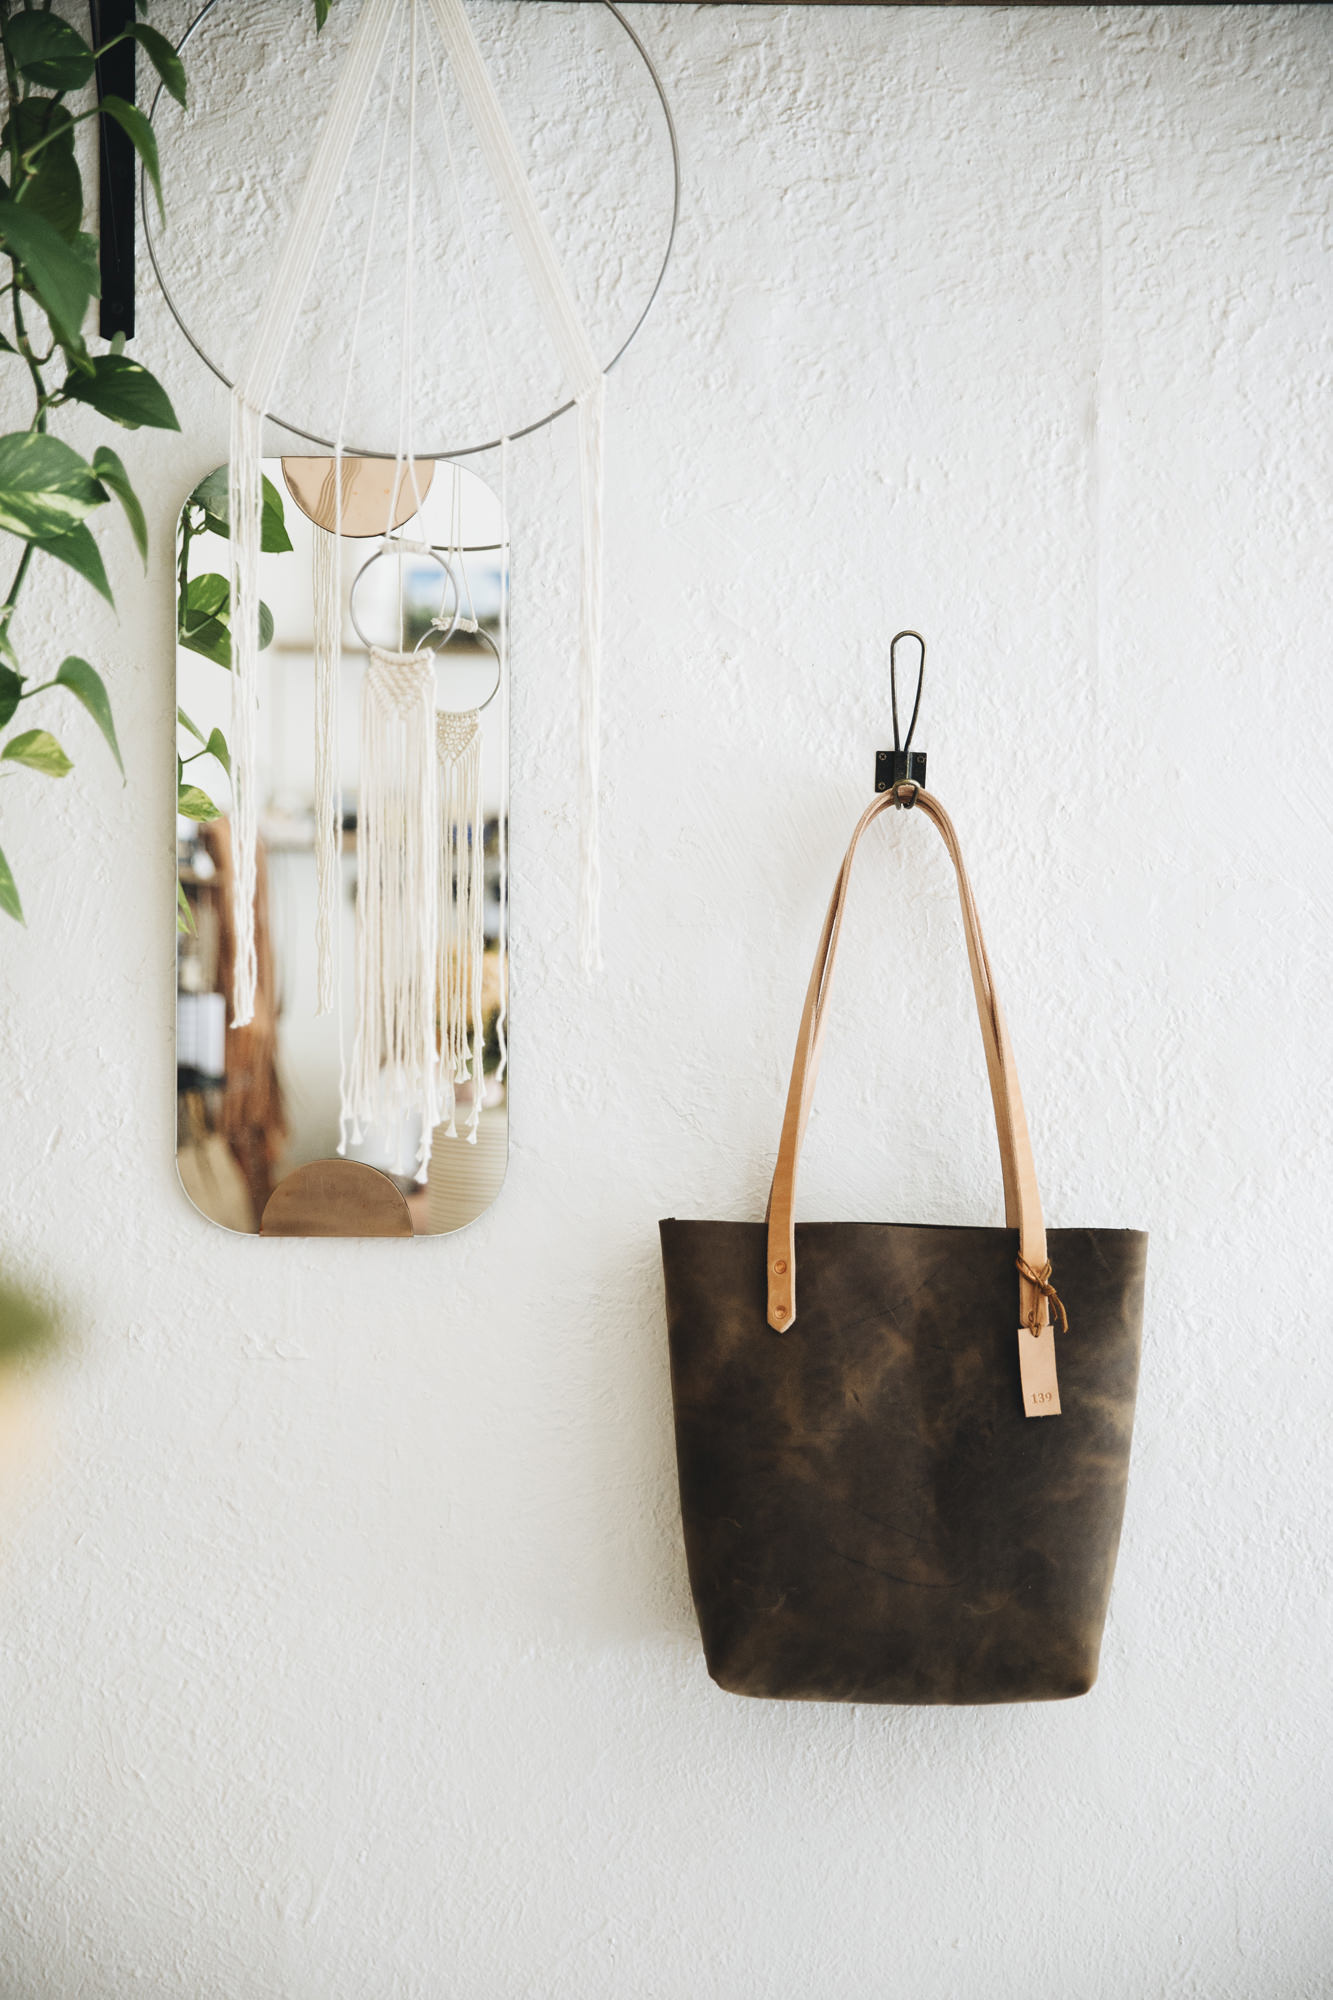 Barbered Leather Tote Bag